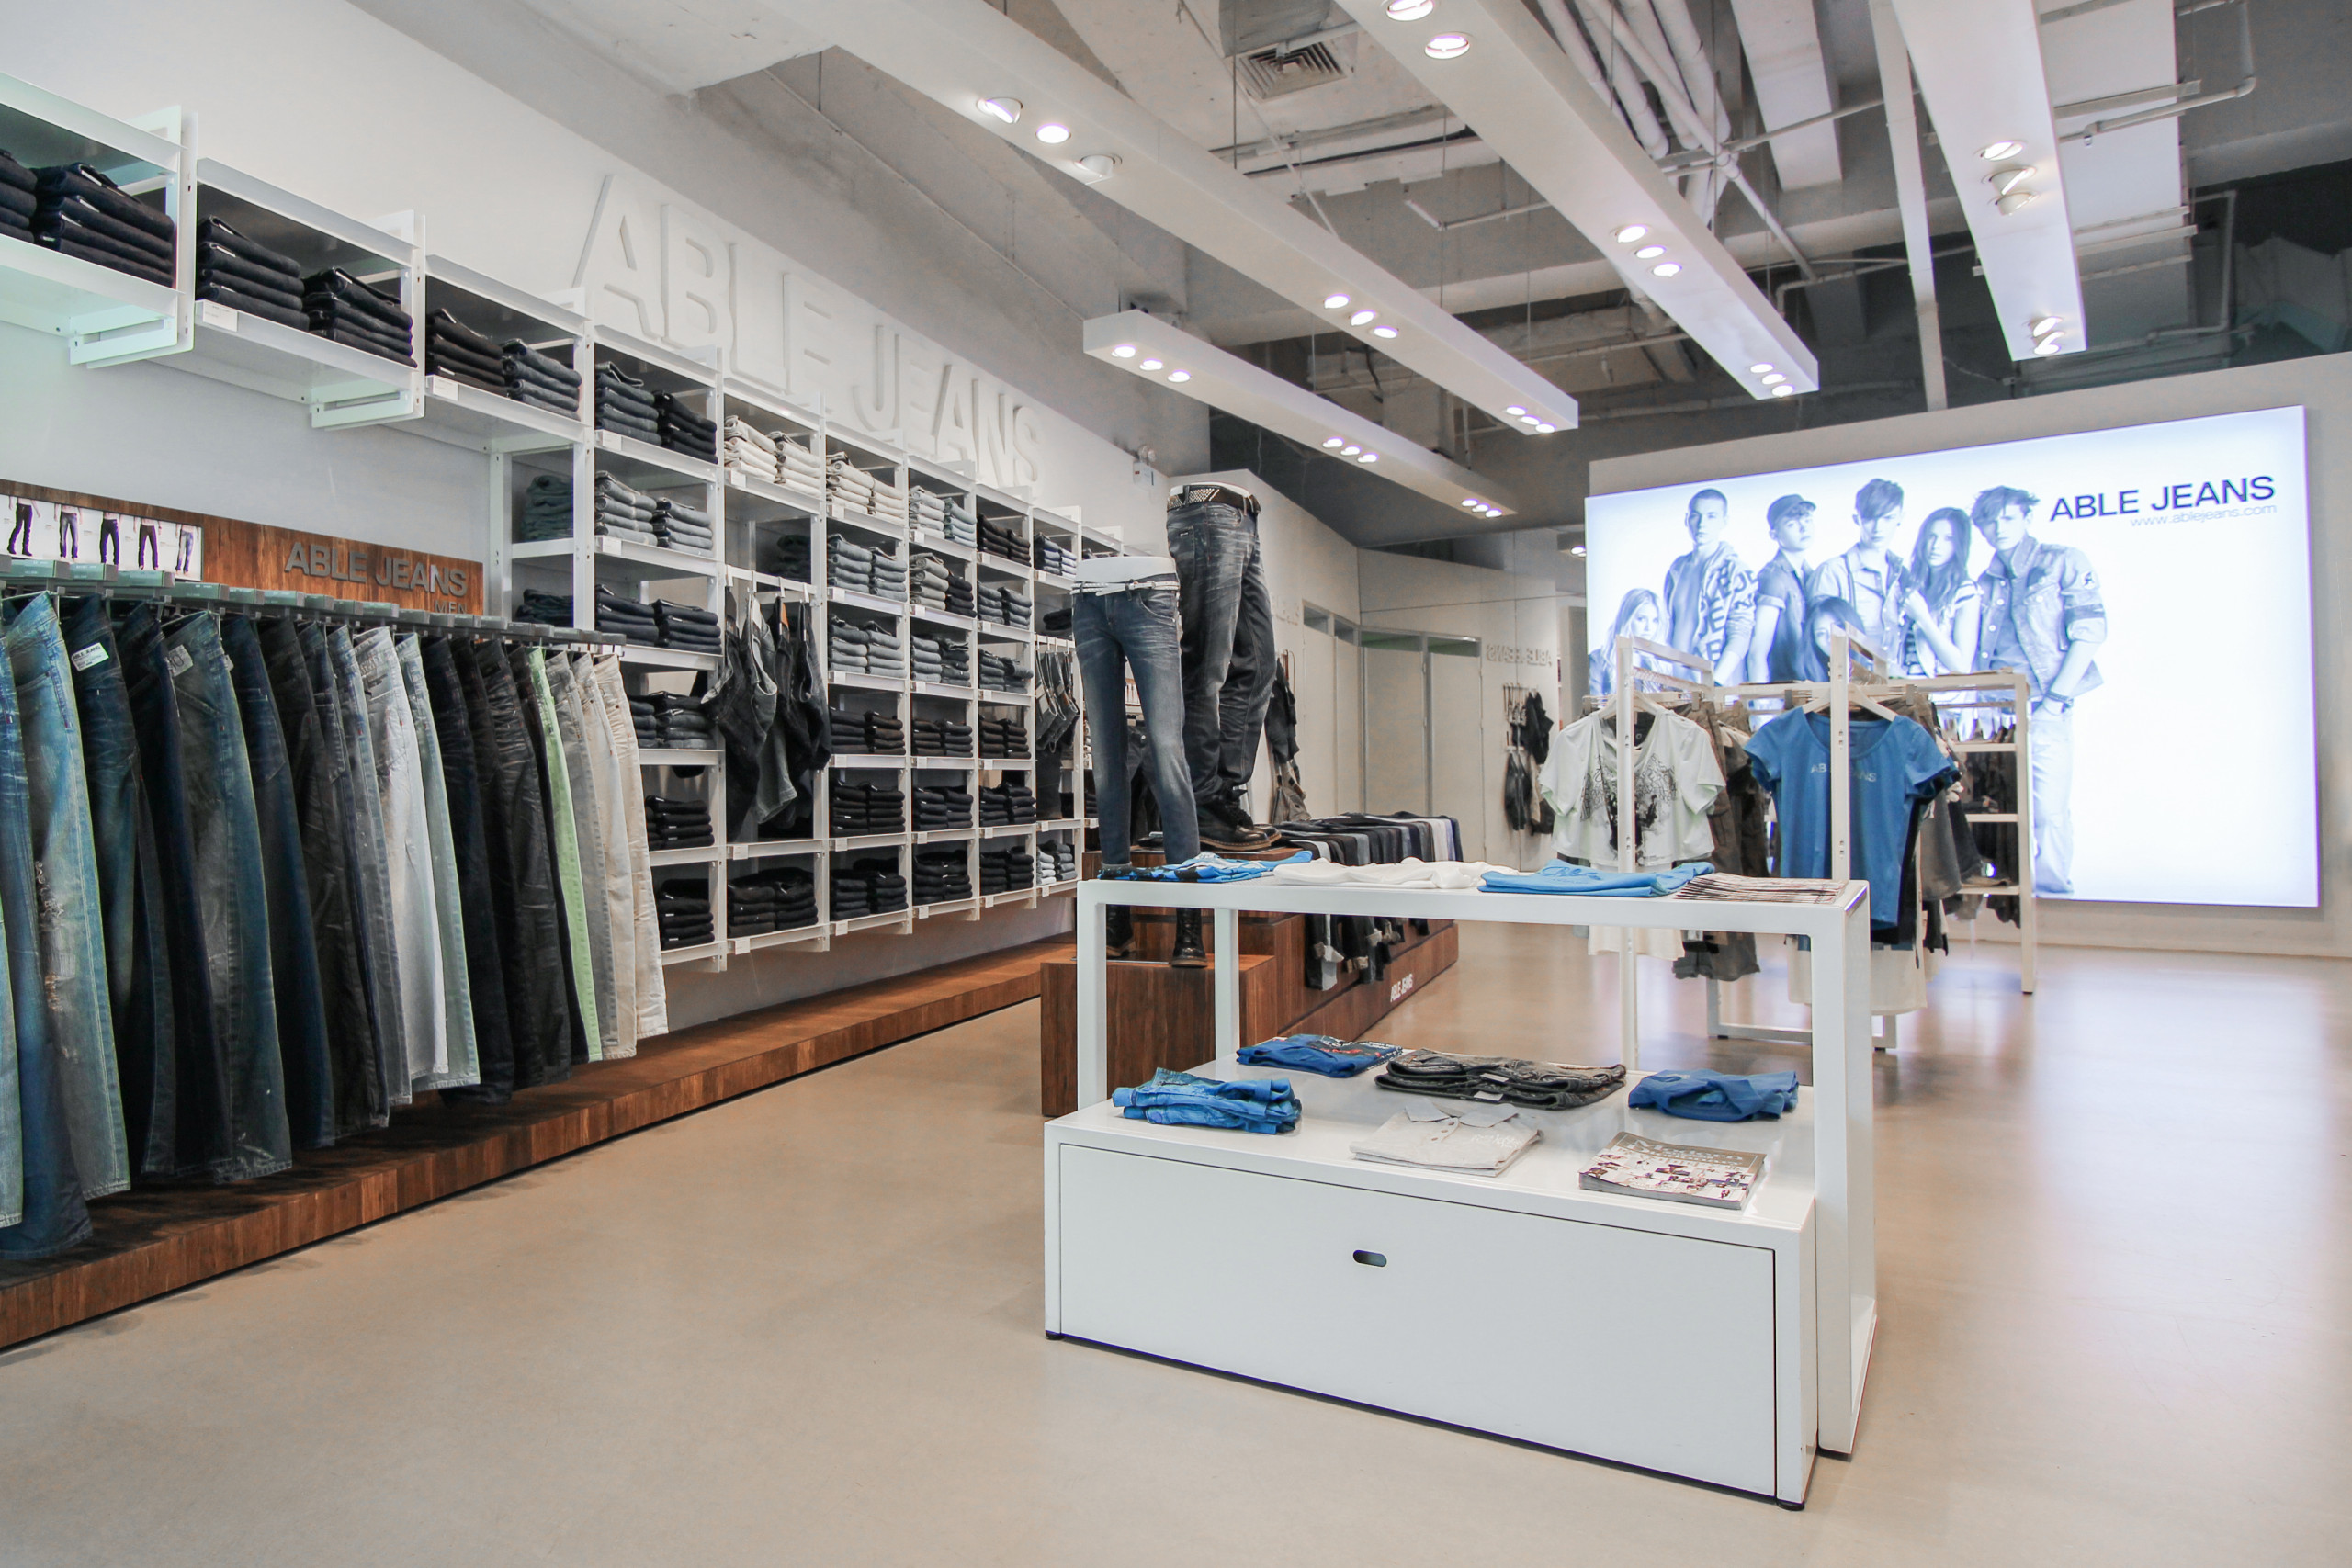 Able Jeans stores china design